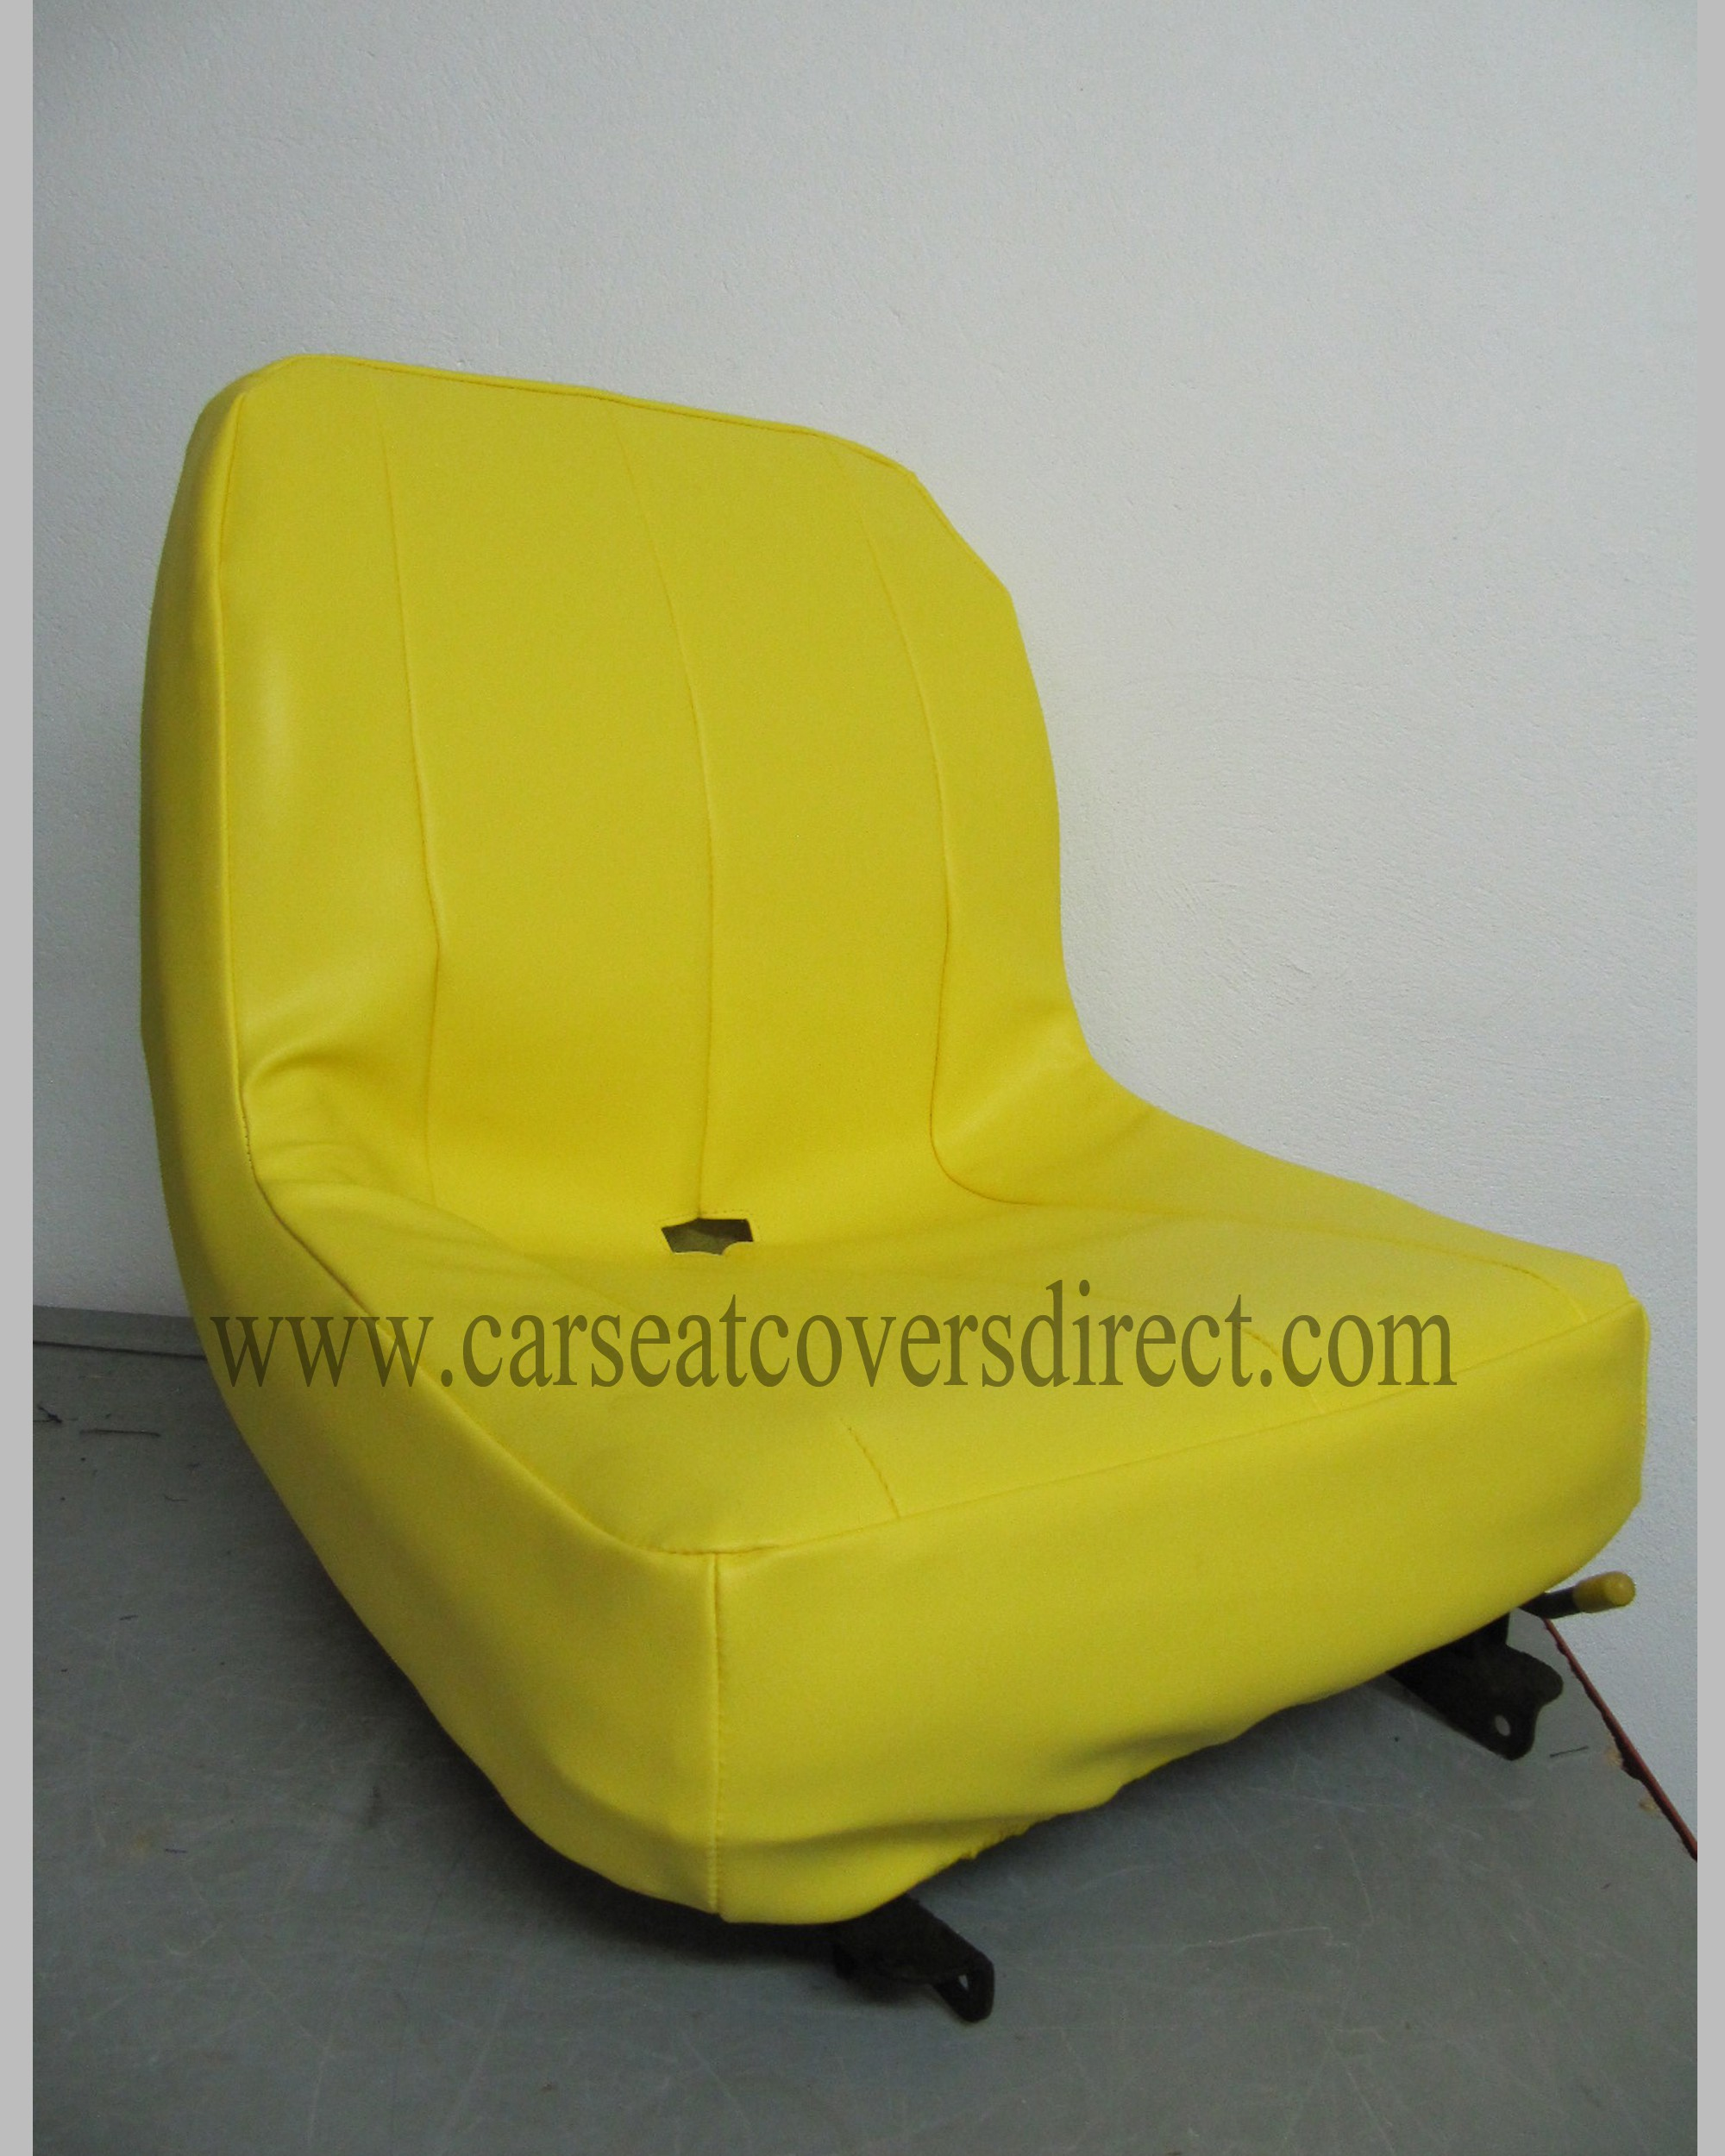 John Deere Seat Covers For Trucks : John deer lawnmower seat tailored truck and tractor